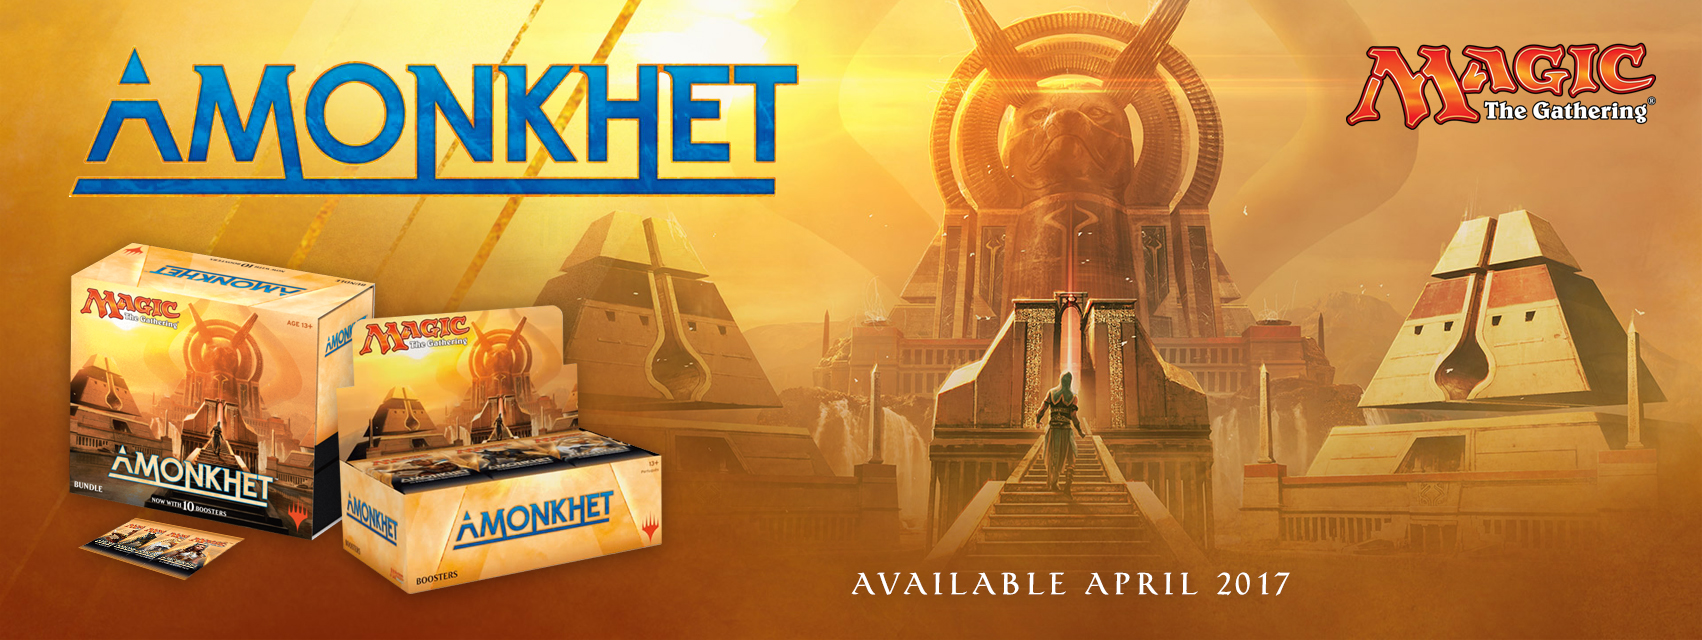 Get Amonkhet Here!